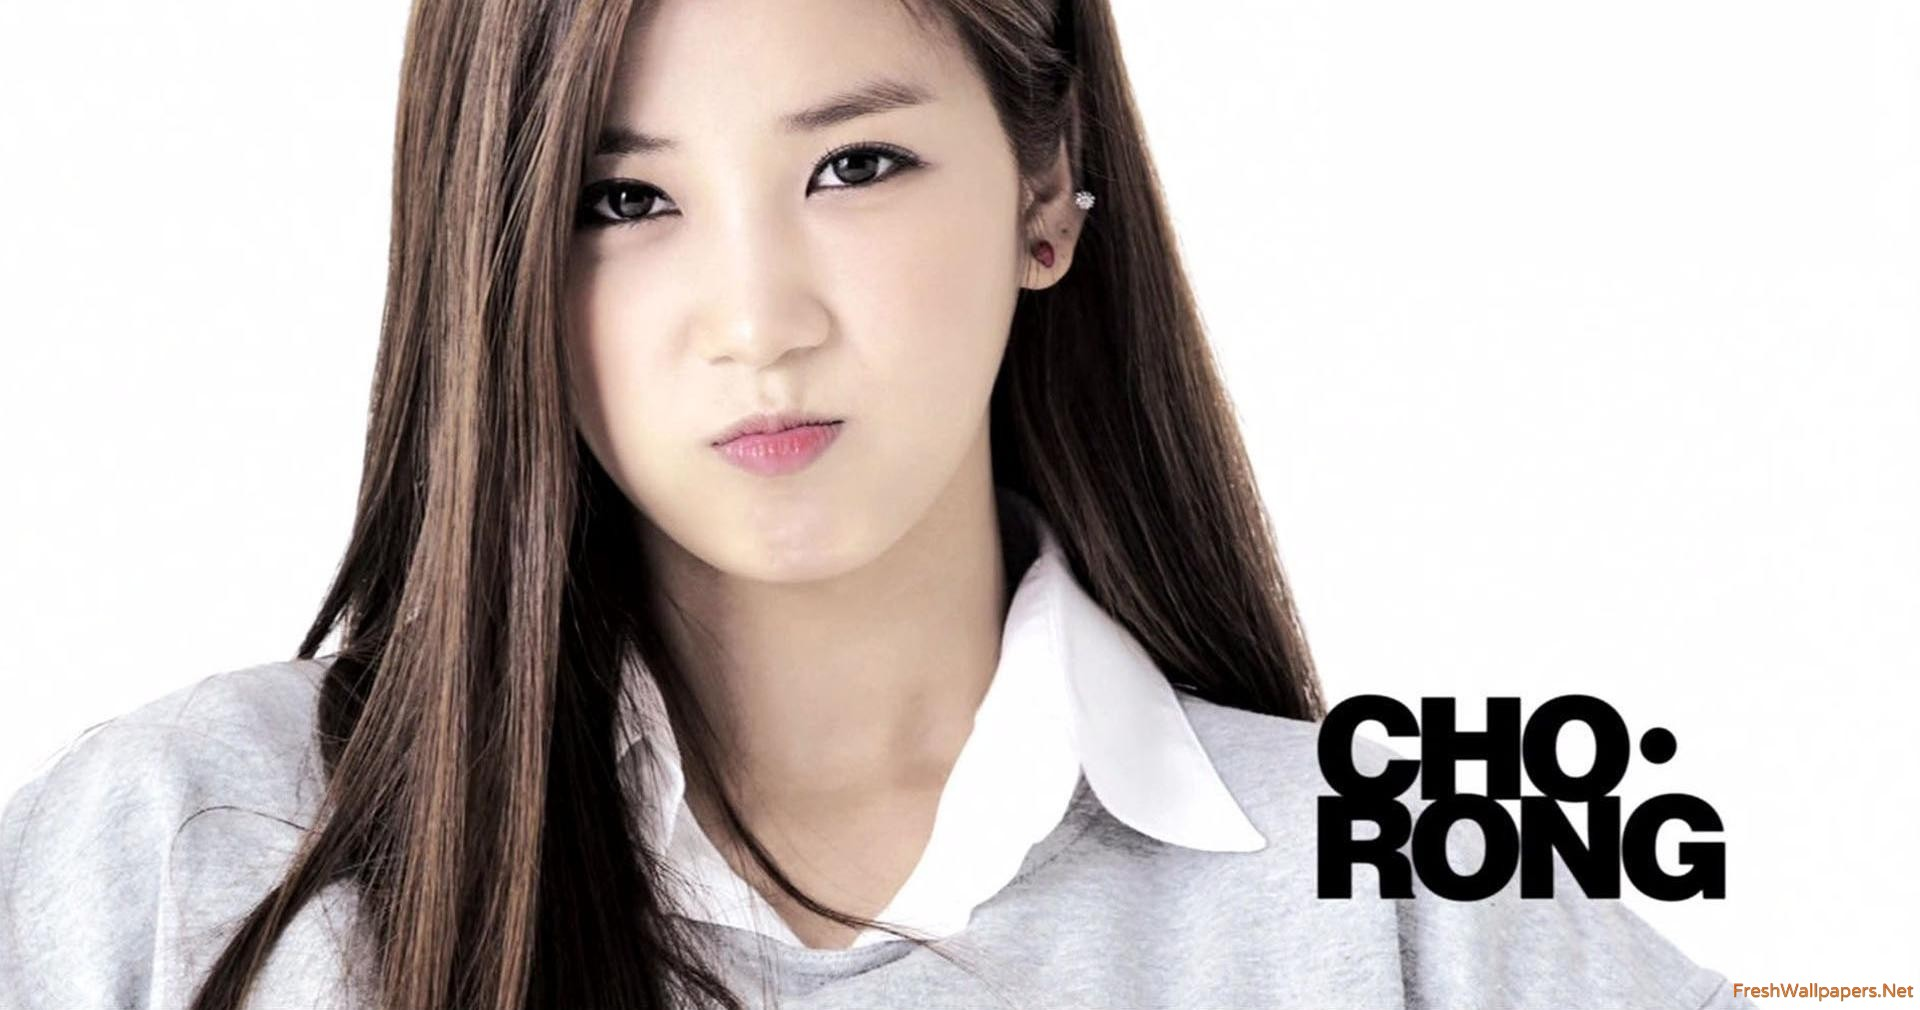 Park Cho rong   A Pink wallpapers Freshwallpapers 1920x1010